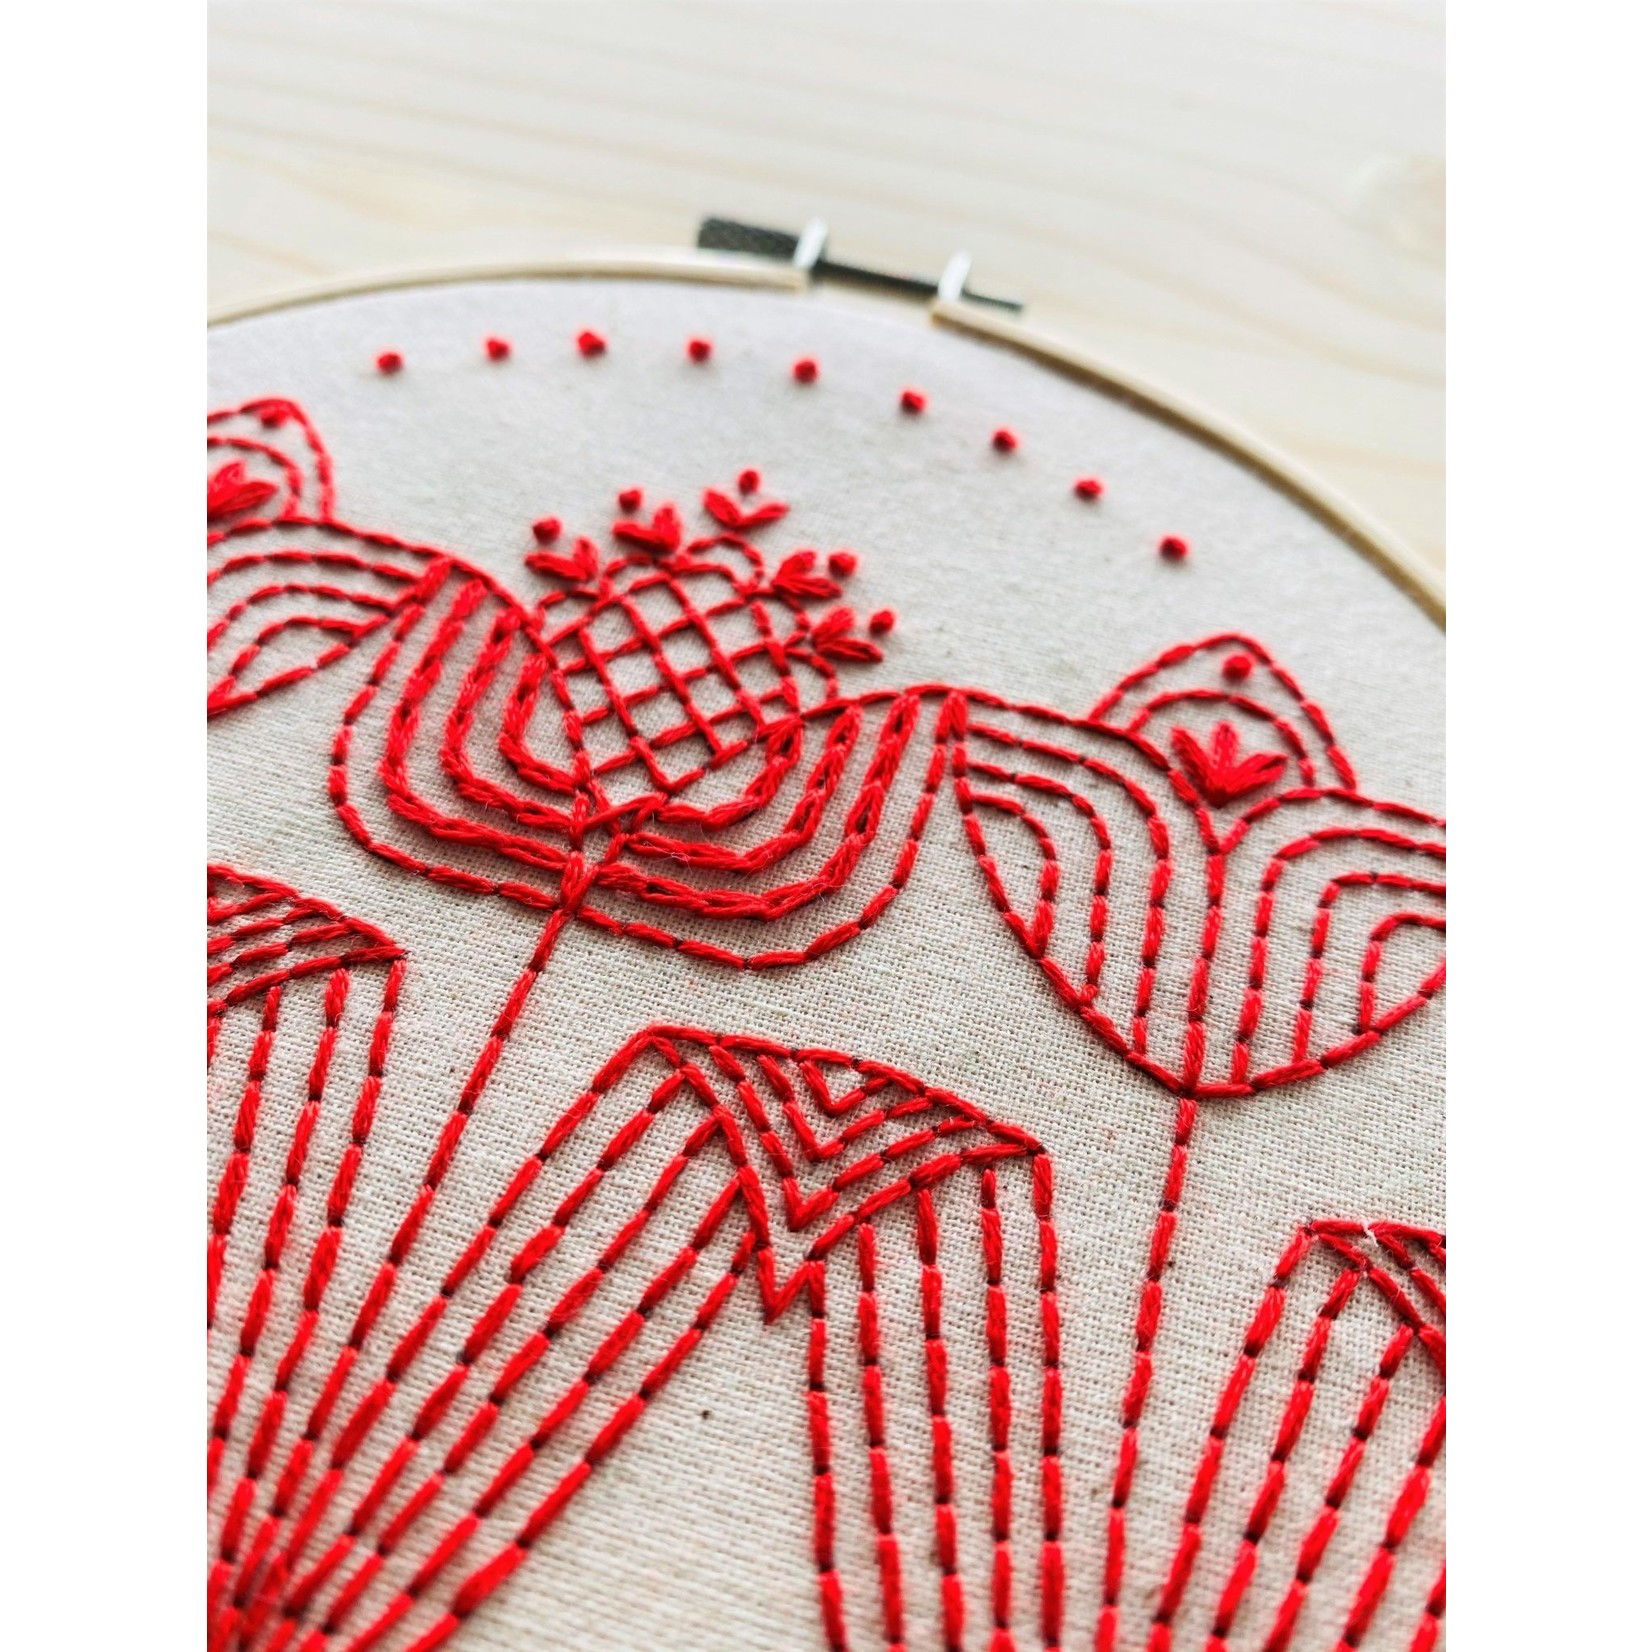 Hook Line and Tinker Tulips in a Row Complete Embroidery Kit